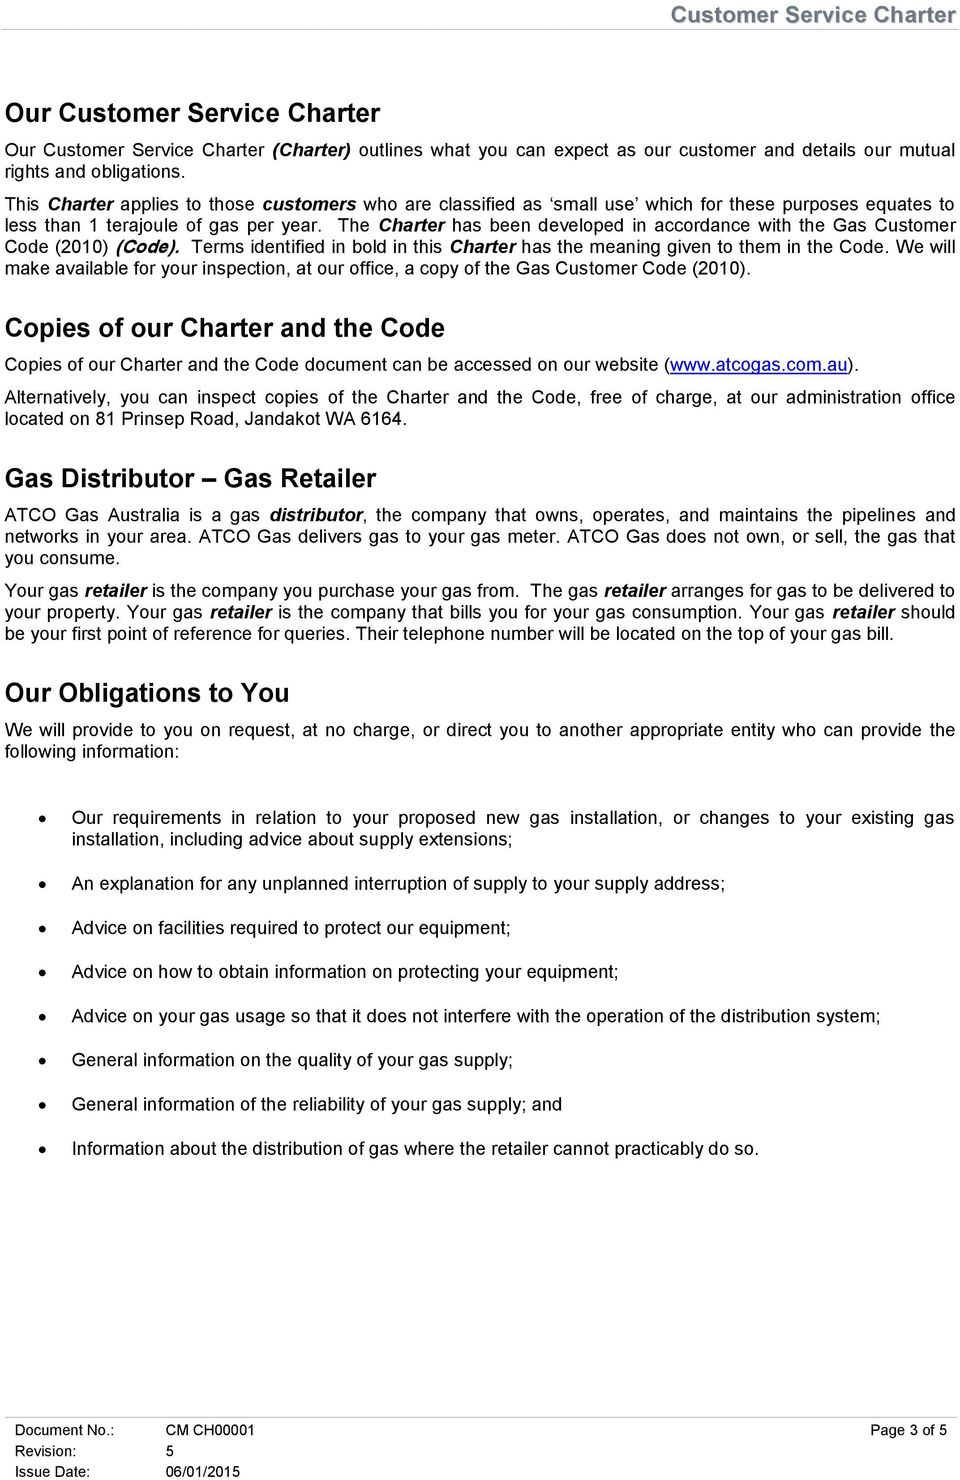 The Charter has been developed in accordance with the Gas Customer Code (2010) (Code). Terms identified in bold in this Charter has the meaning given to them in the Code.